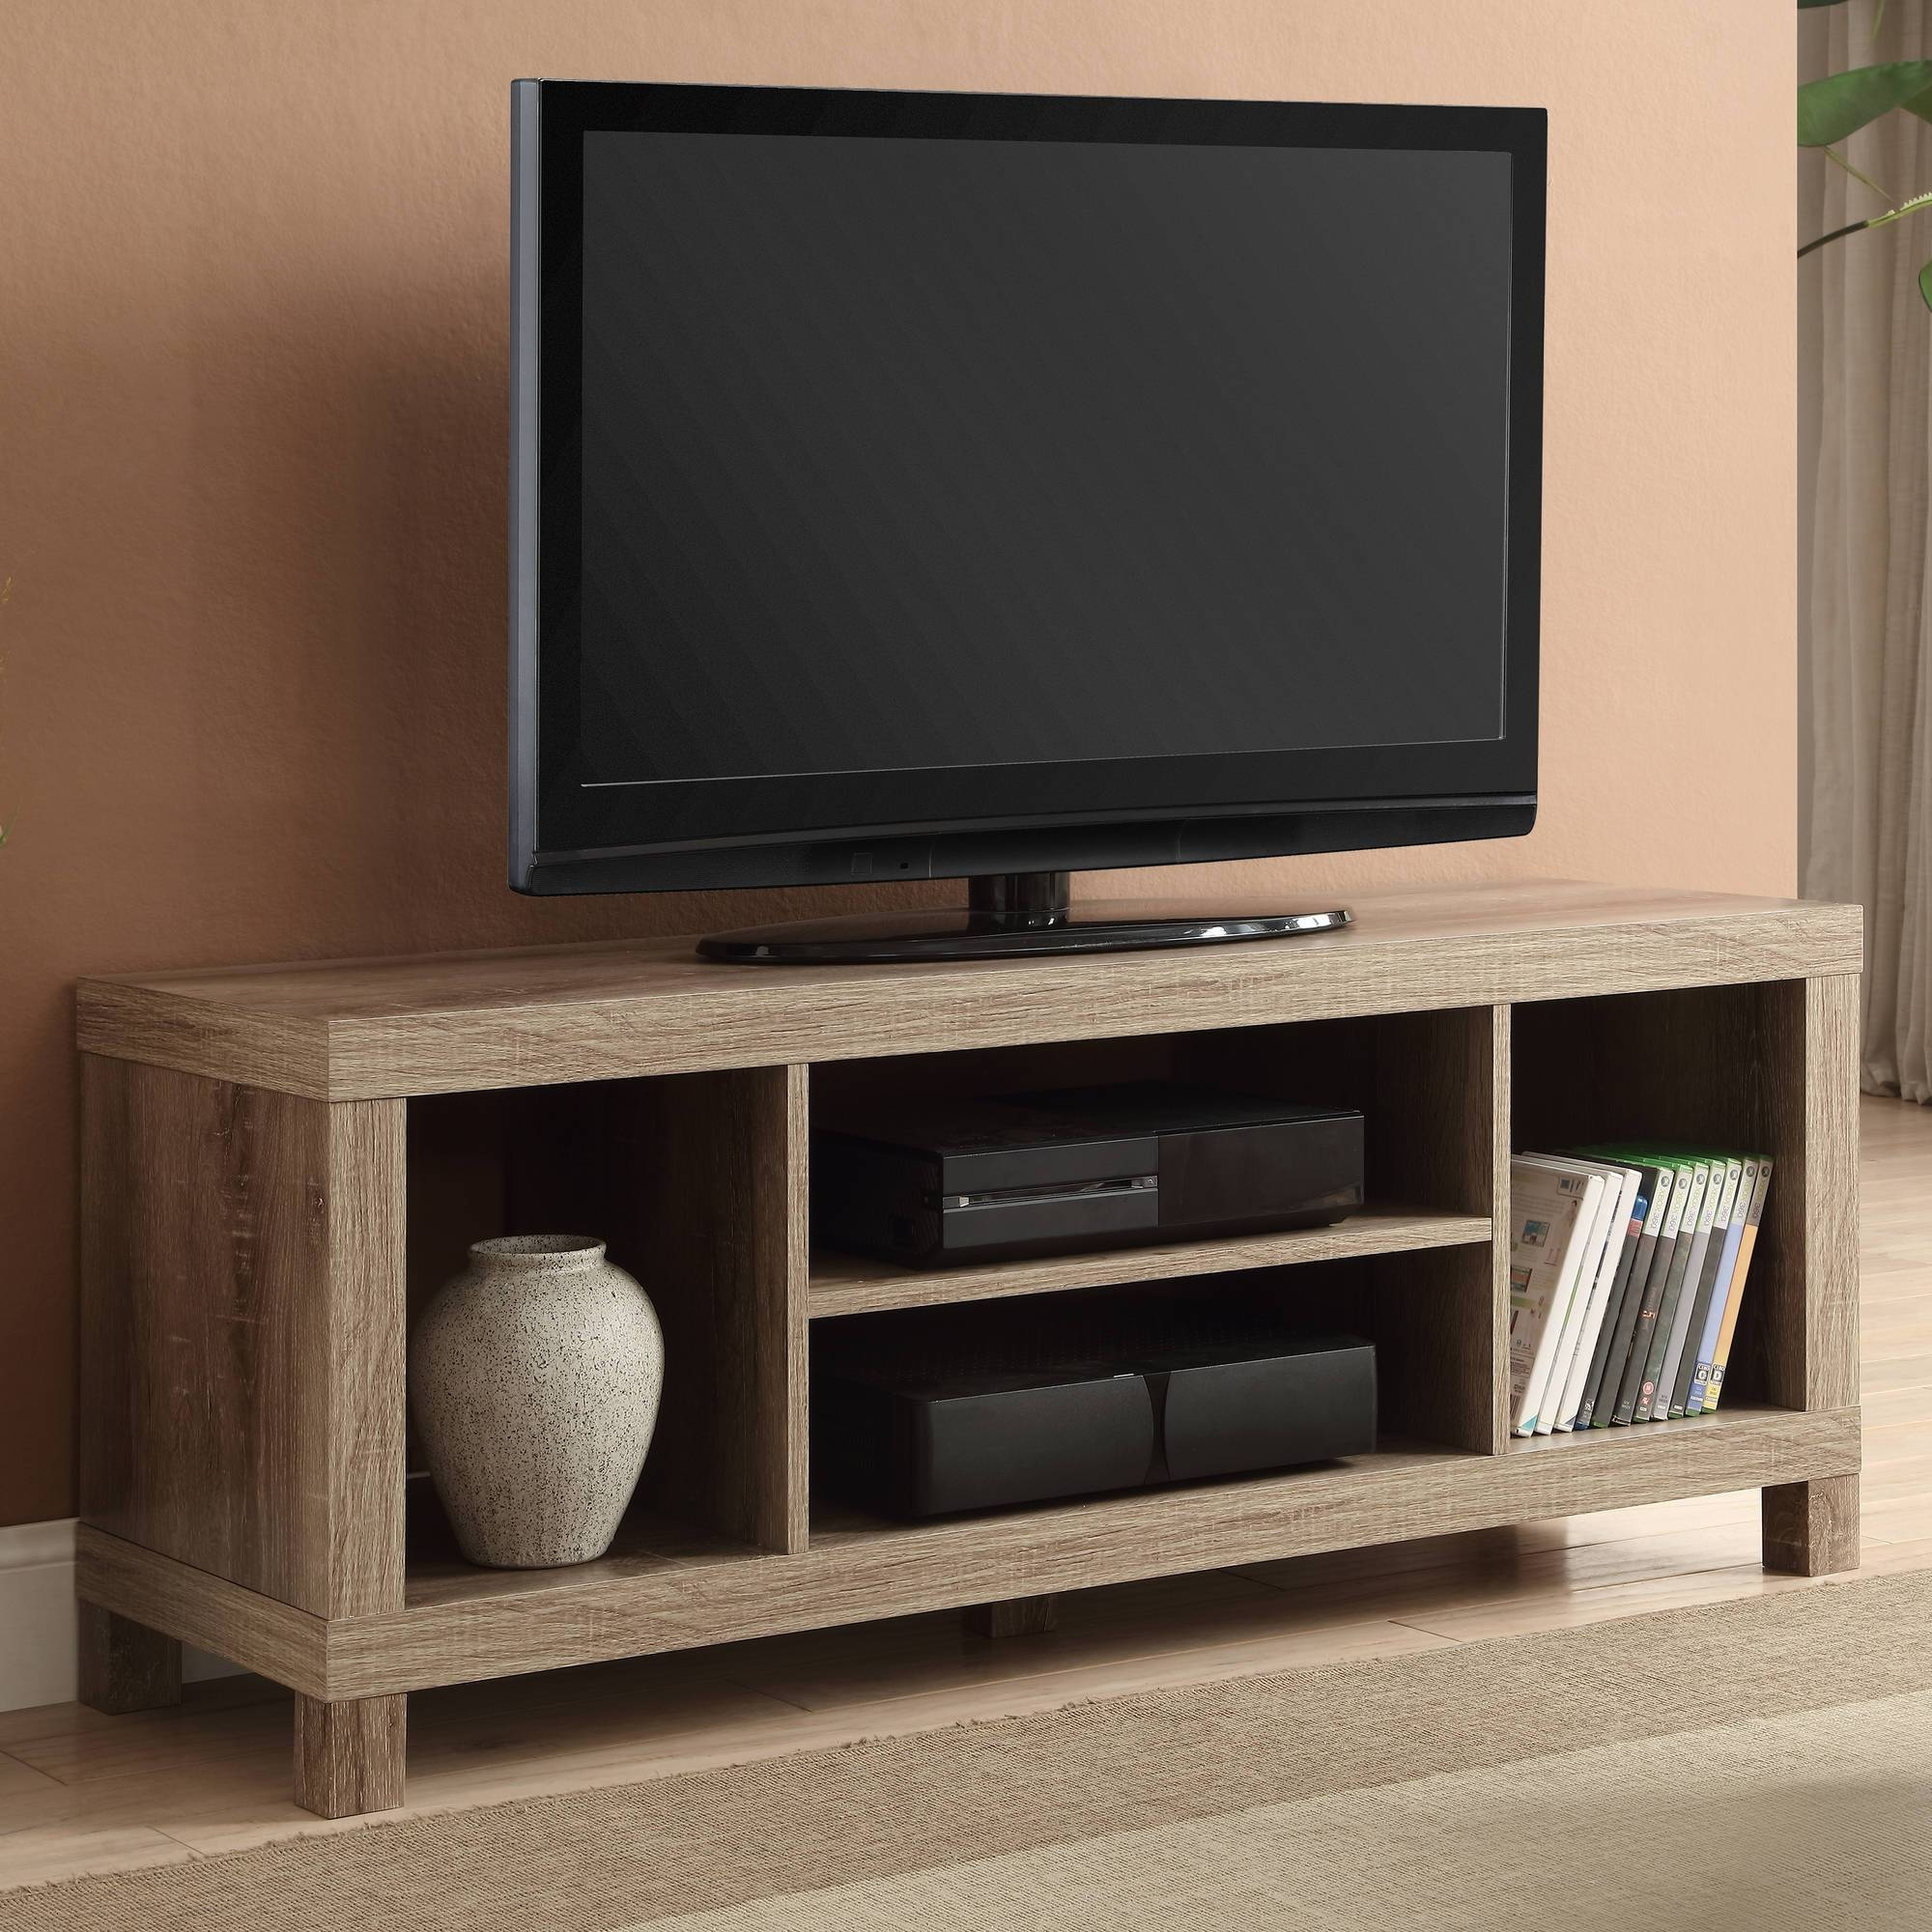 "Black Oak Tv Stand For Tvs Up To 42"" - Walmart with Tv Stands for Small Rooms (Image 6 of 15)"